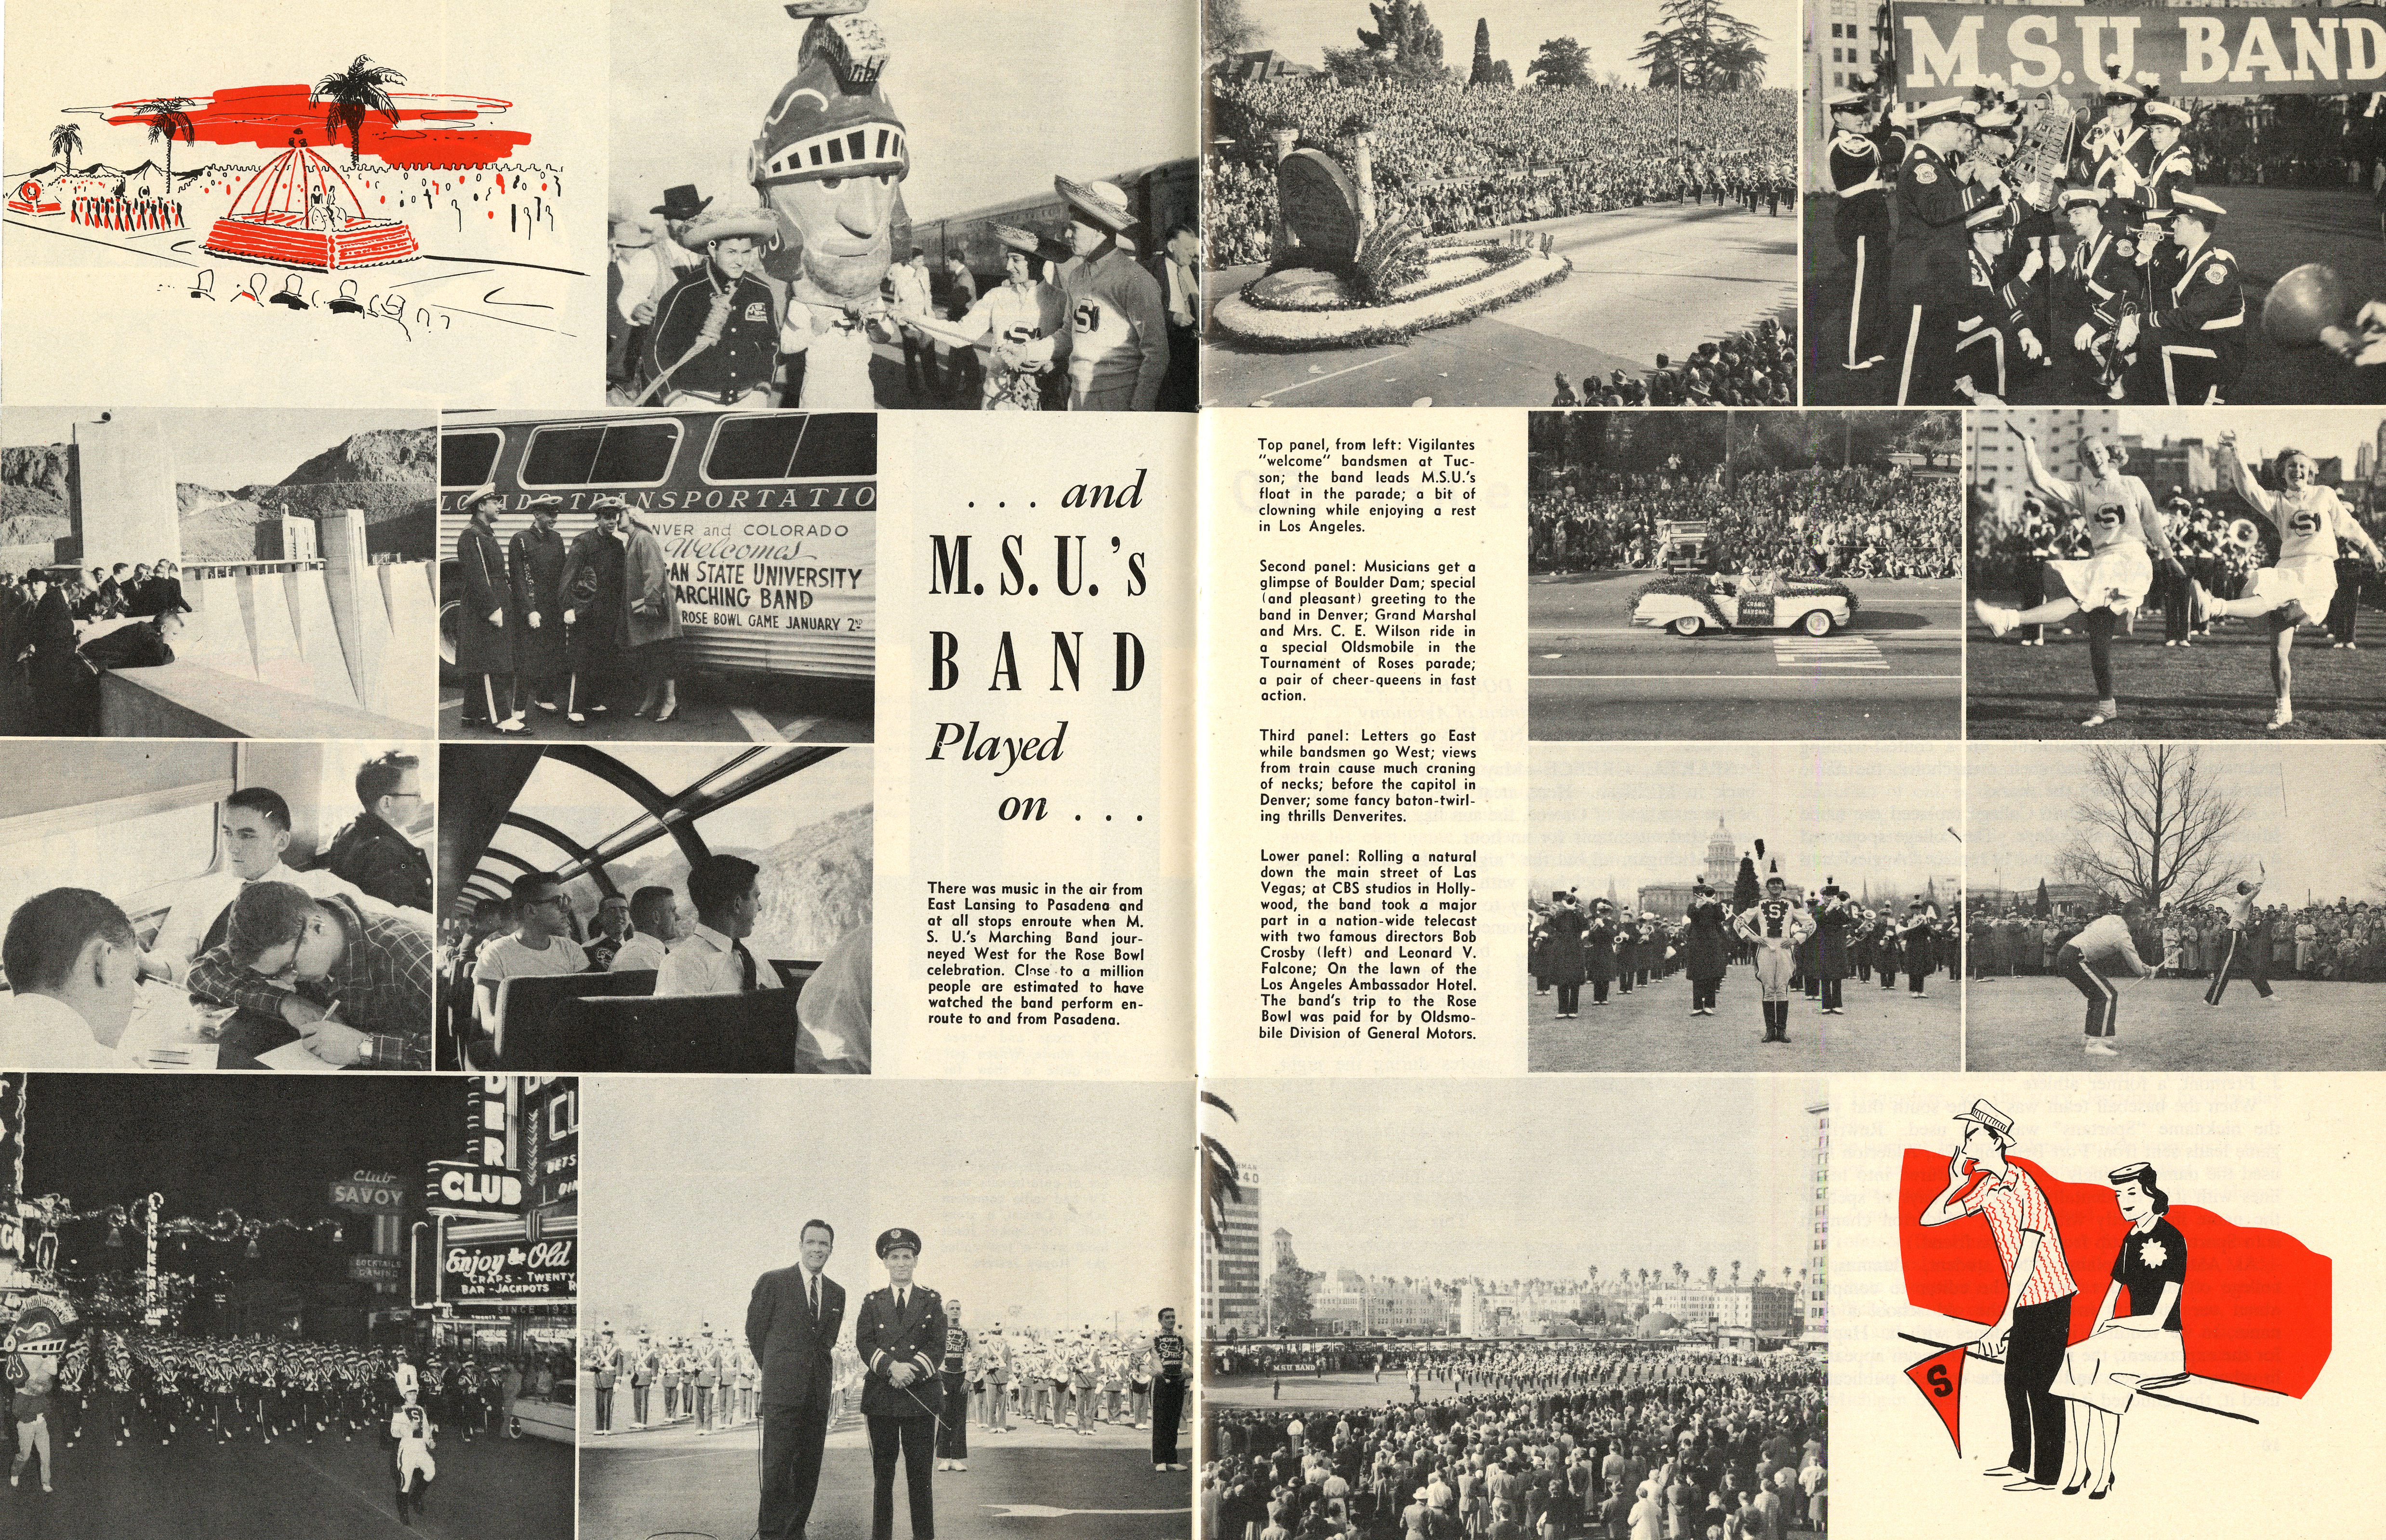 MSU Marching Band's Rose Bowl trip, the Michigan State University Magazine, 1956